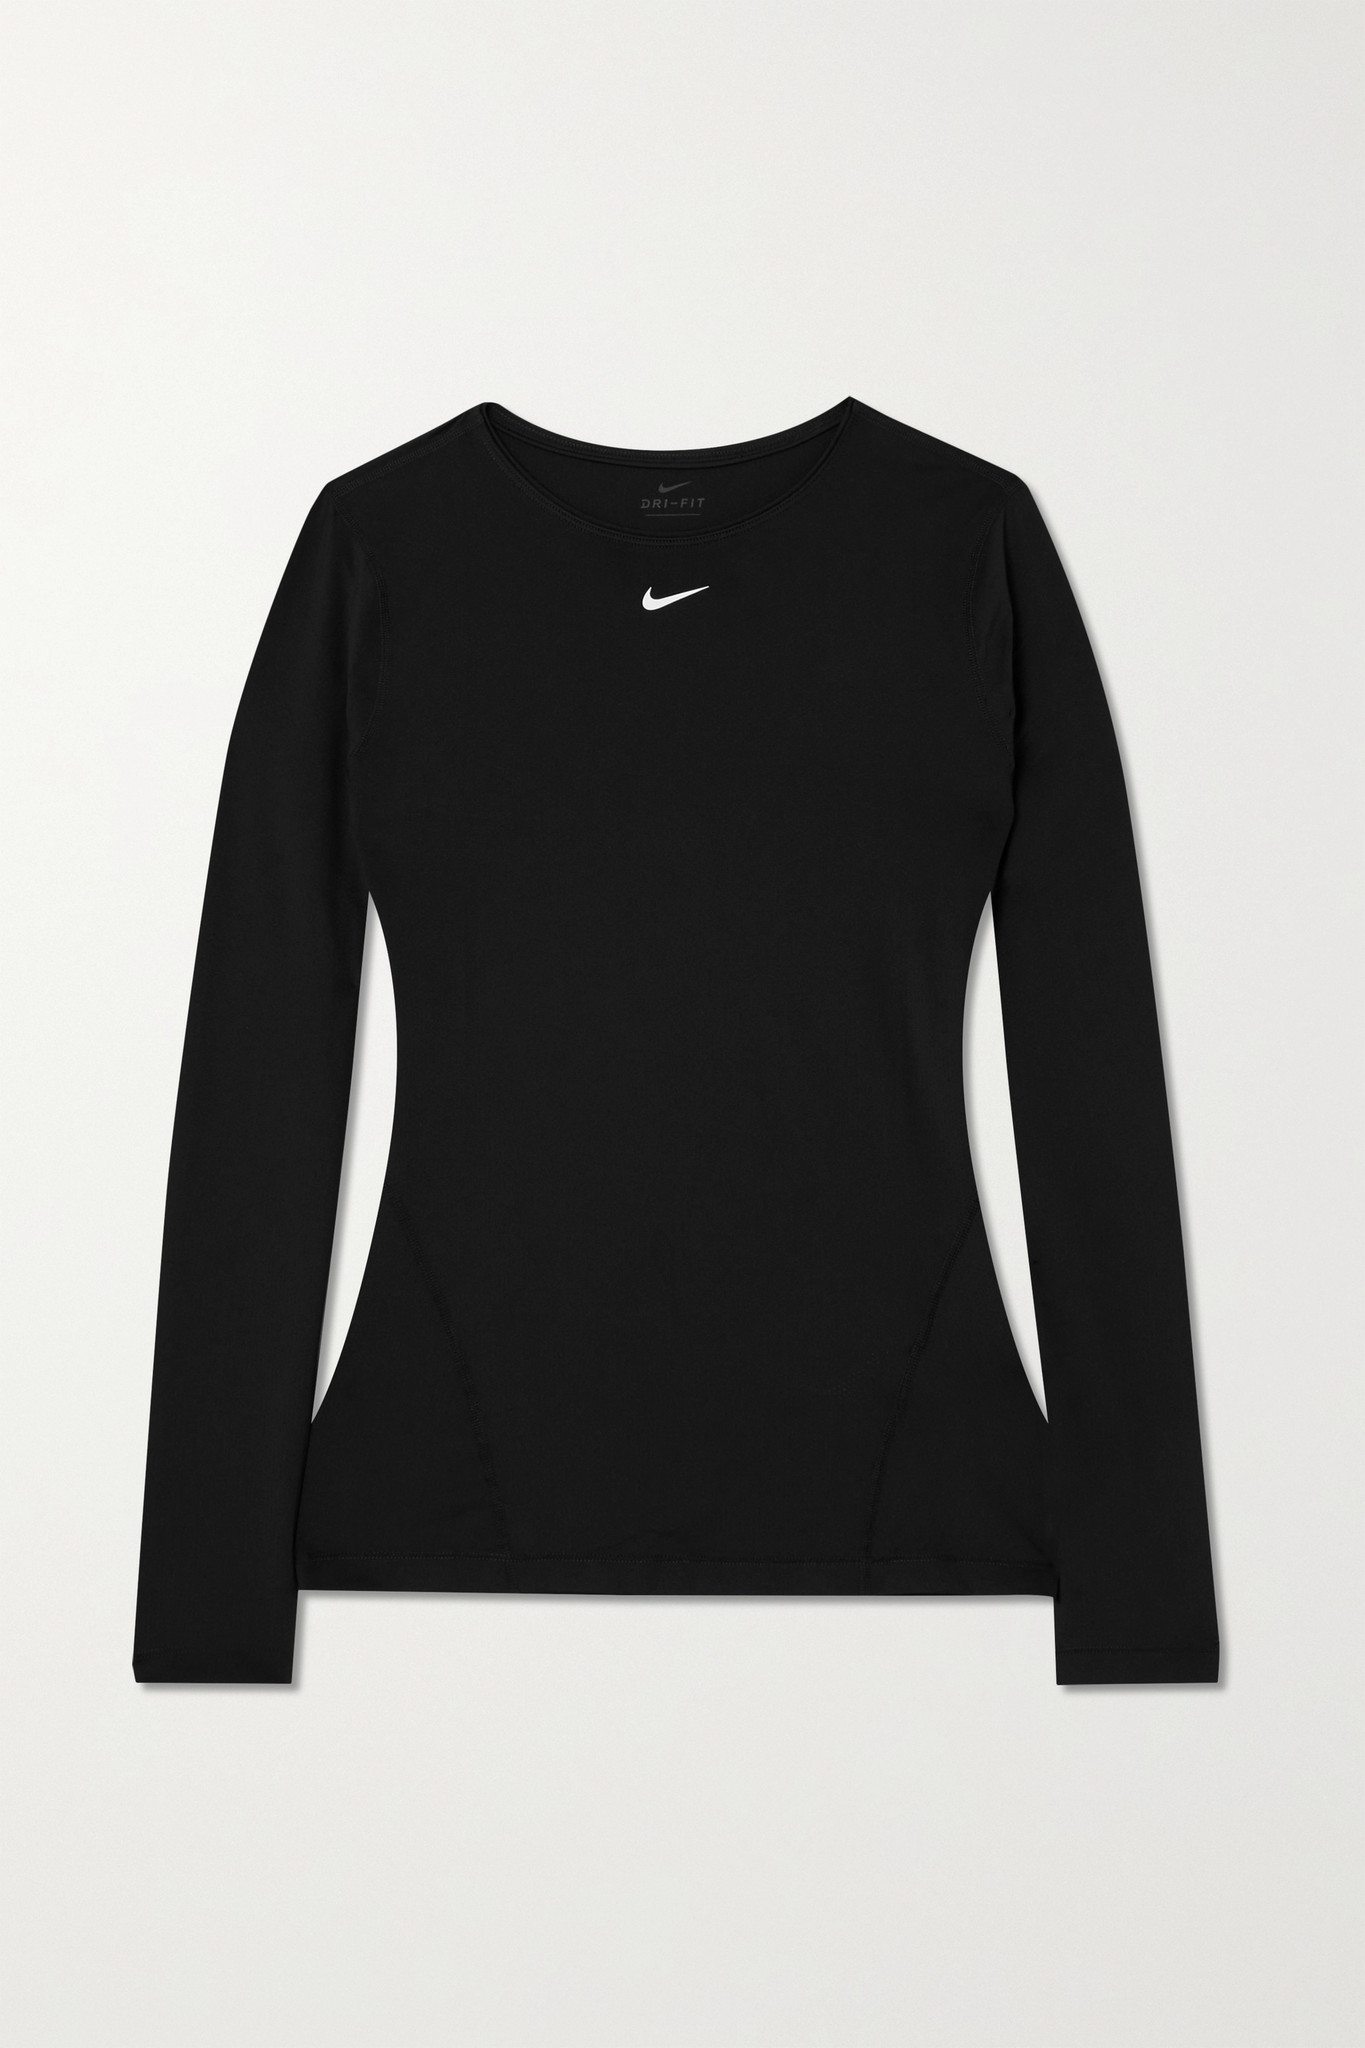 NIKE - Pro Perforated Stretch-mesh Top - Black - x small